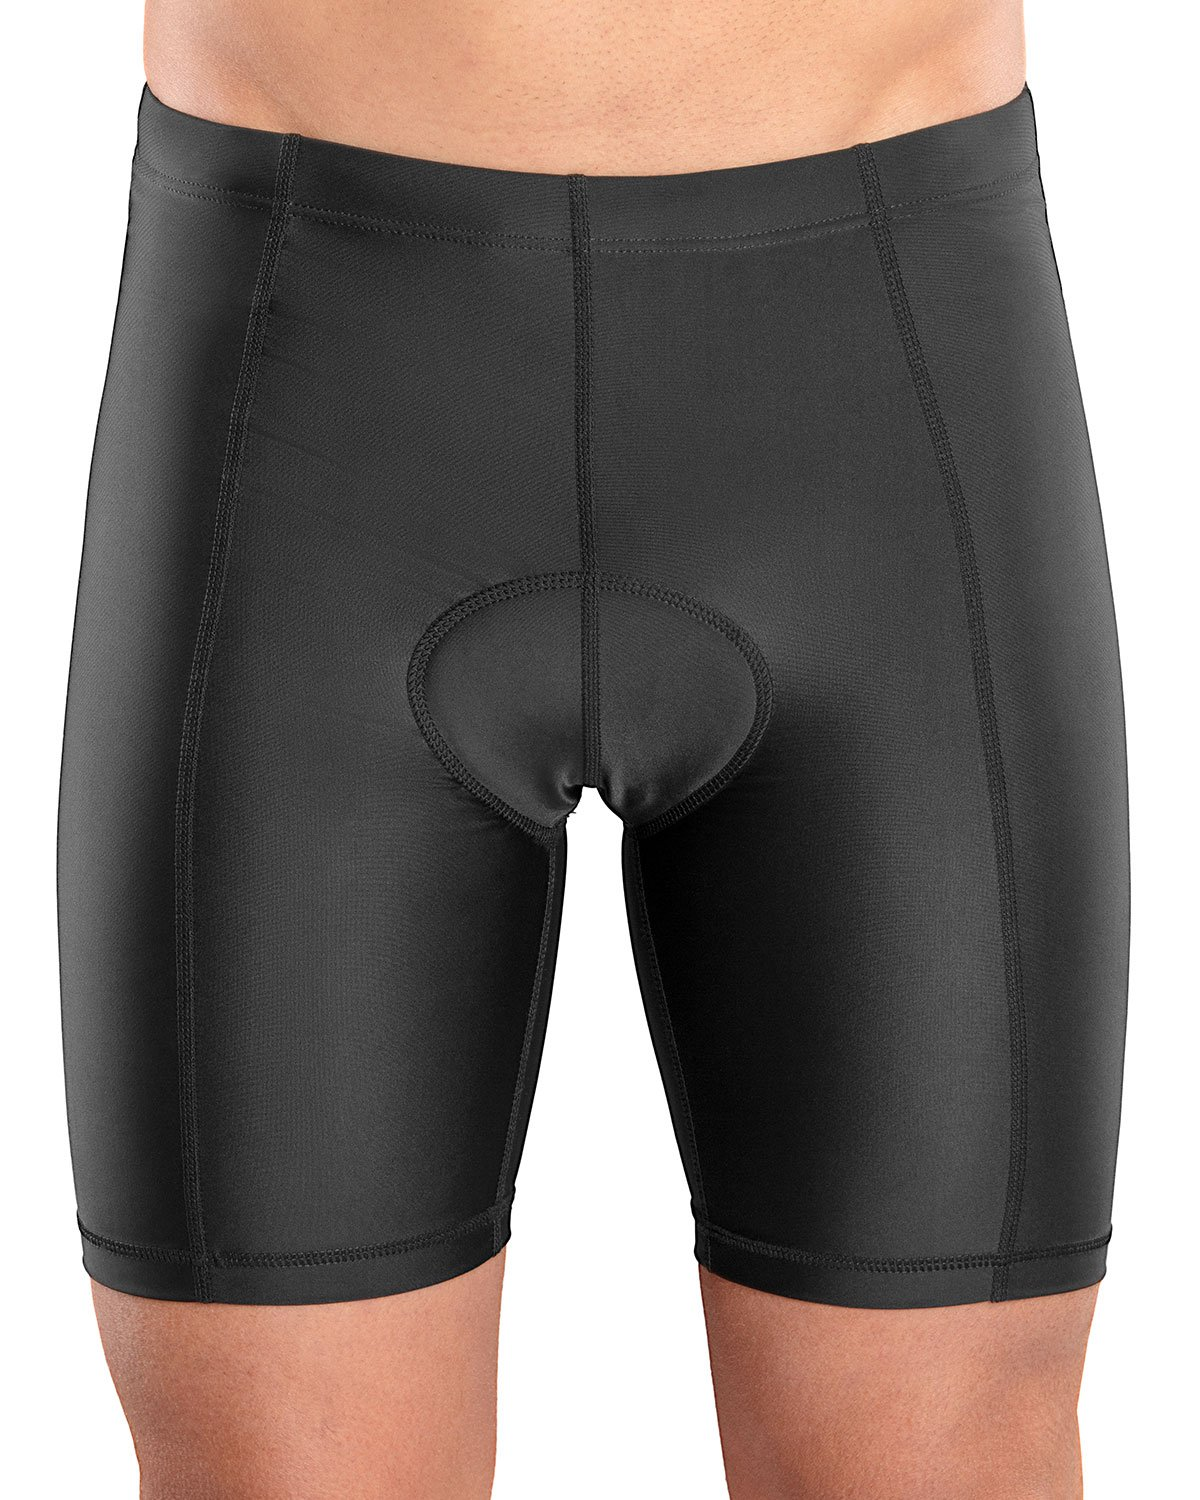 SLS3 Men`s Triathlon Swim Shorts + Race Belt | 2 Pockets Triathalon Shorts | Bike Shorts Men Triathlon | FRT 2.0 | German Designed L by SLS3 (Image #5)